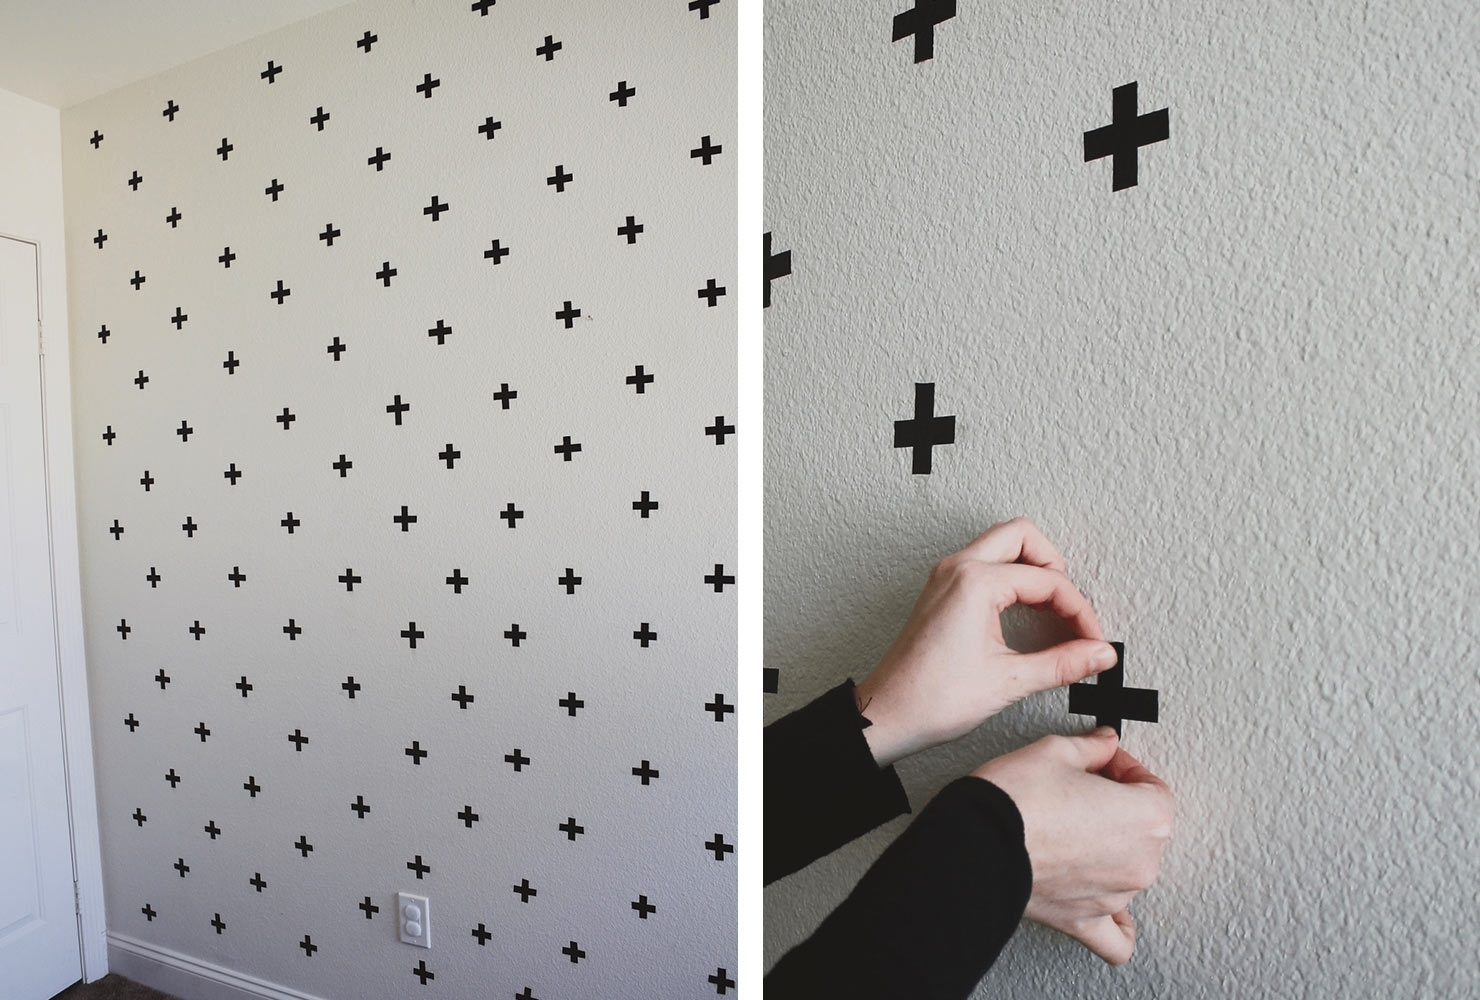 25 Unique Diy Wall Art Ideas (With Printables) | Shutterfly In Washi Tape Wall Art (Gallery 18 of 20)